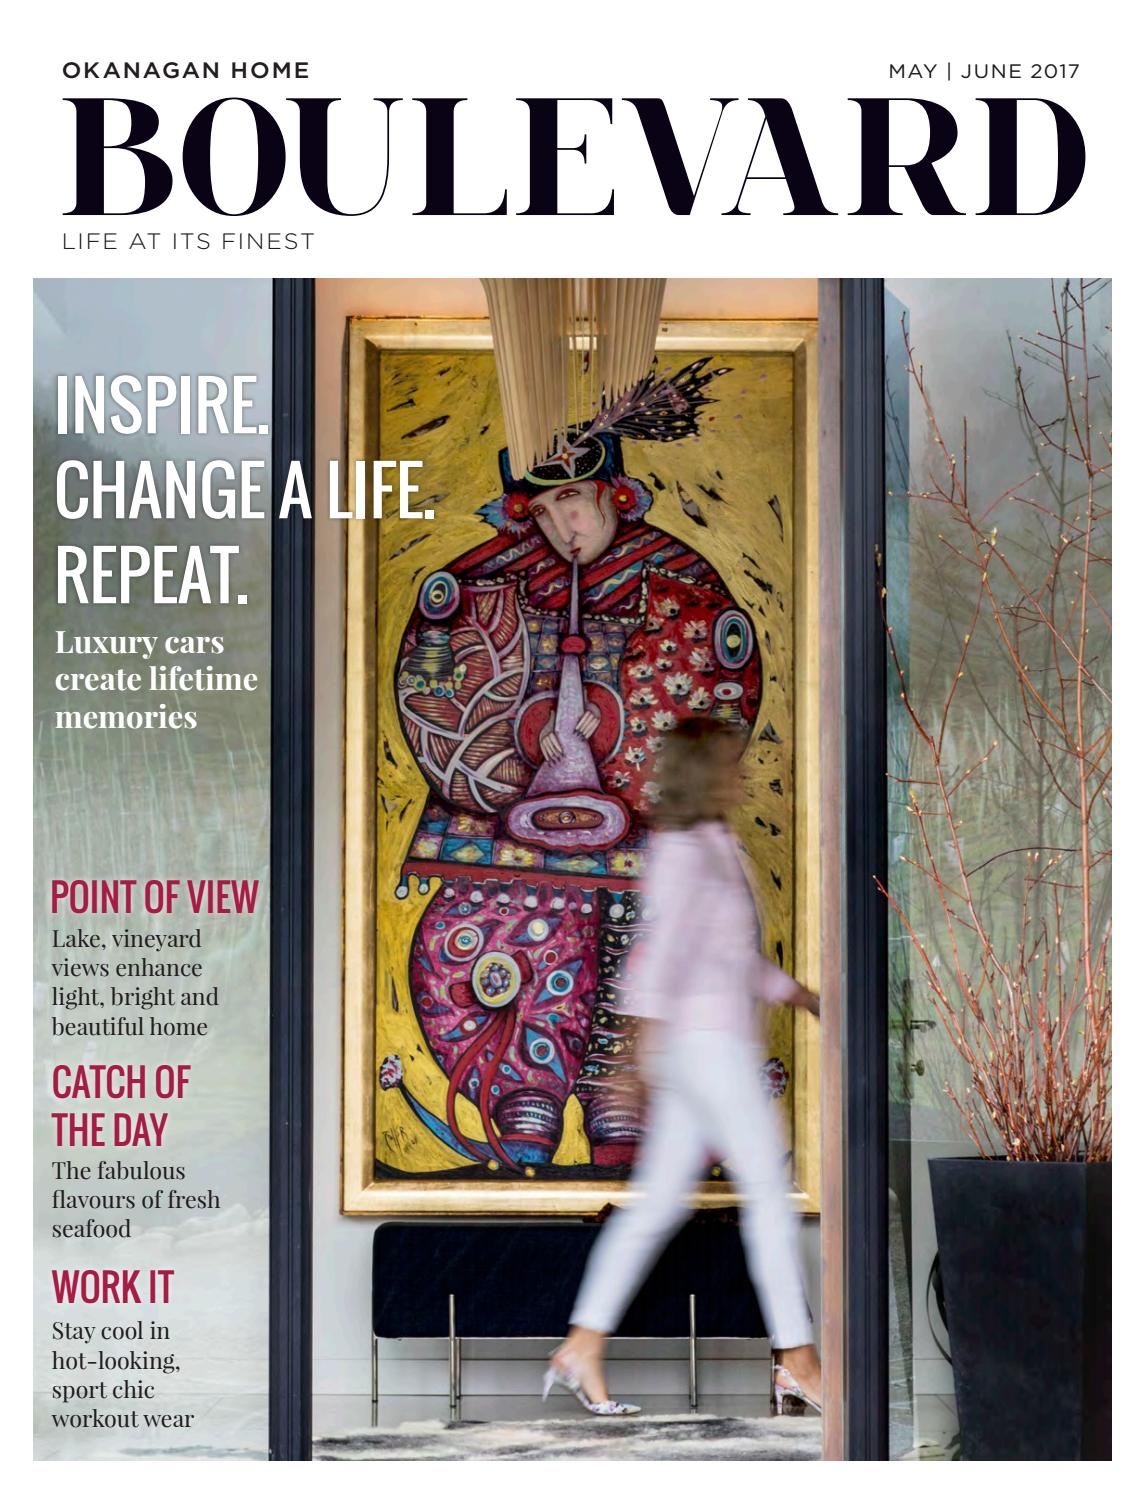 Boulevard Magazine, Okanagan Home - May/June 2017 Issue by Boulevard  Magazine - issuu